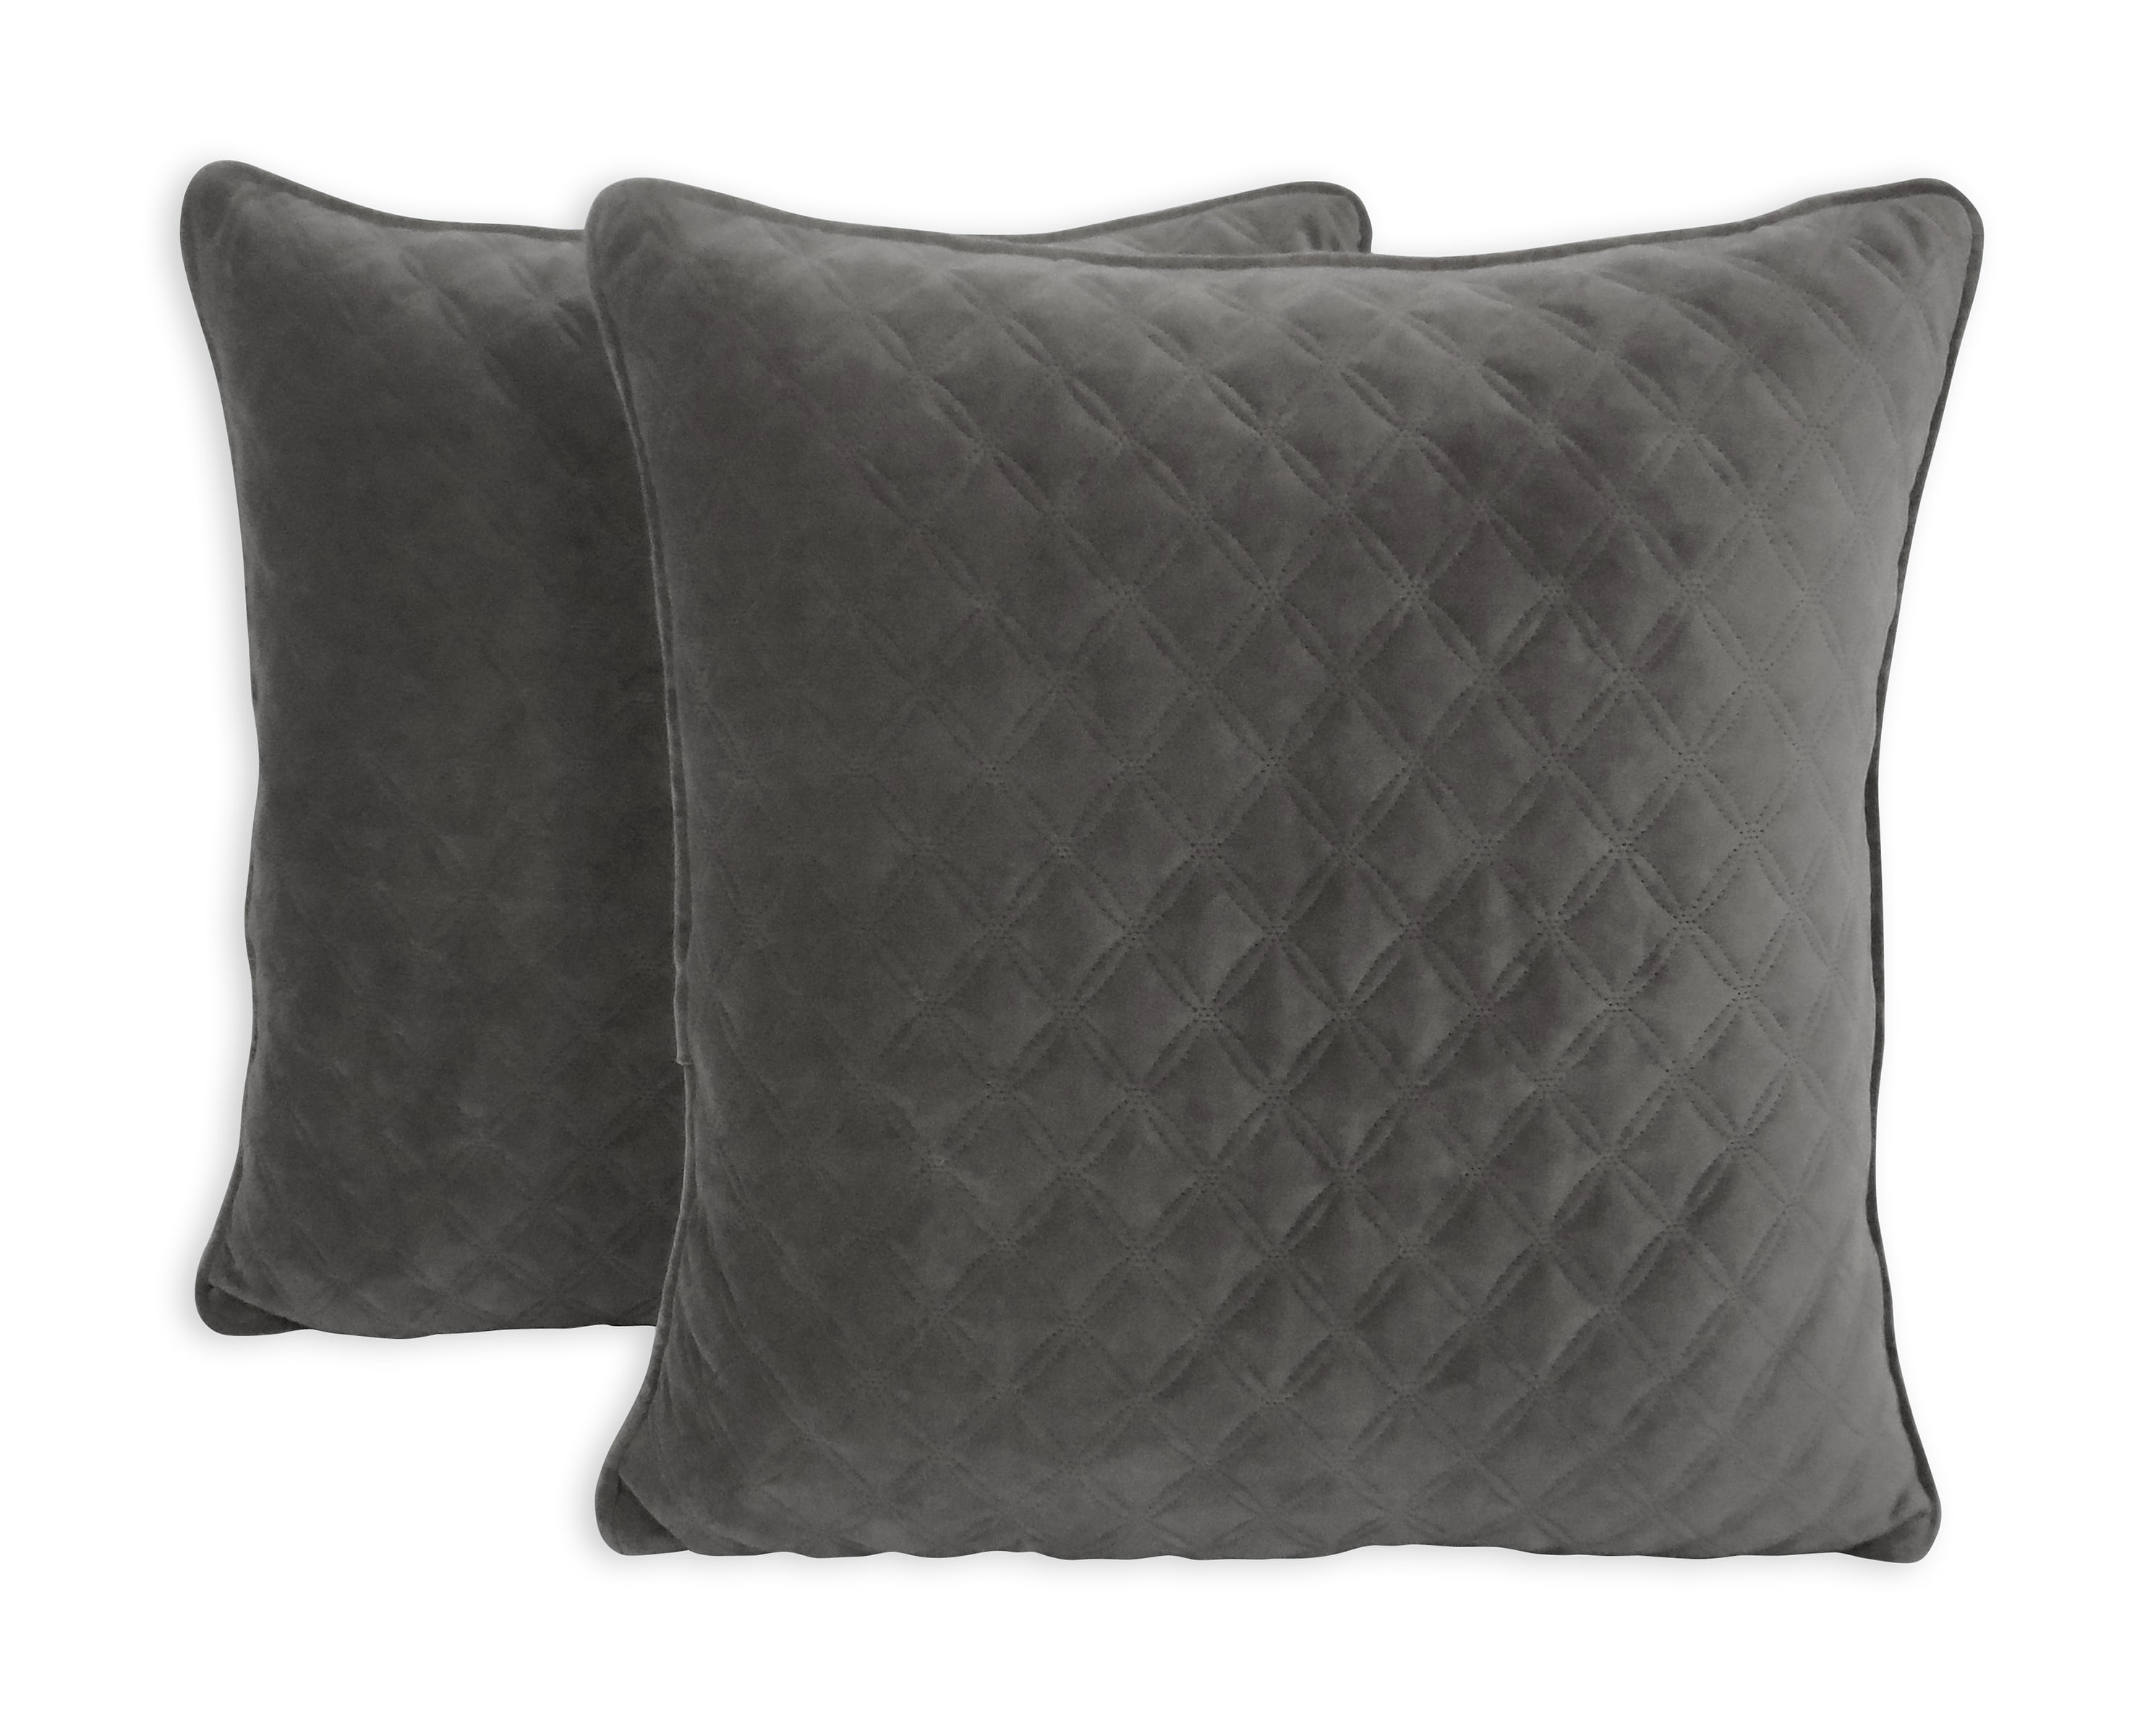 """Better Homes & Gardens Quilted Velvet Decorative Throw Pillow, 19"""" x 19\ by Betters Homes %26 Gardens"""